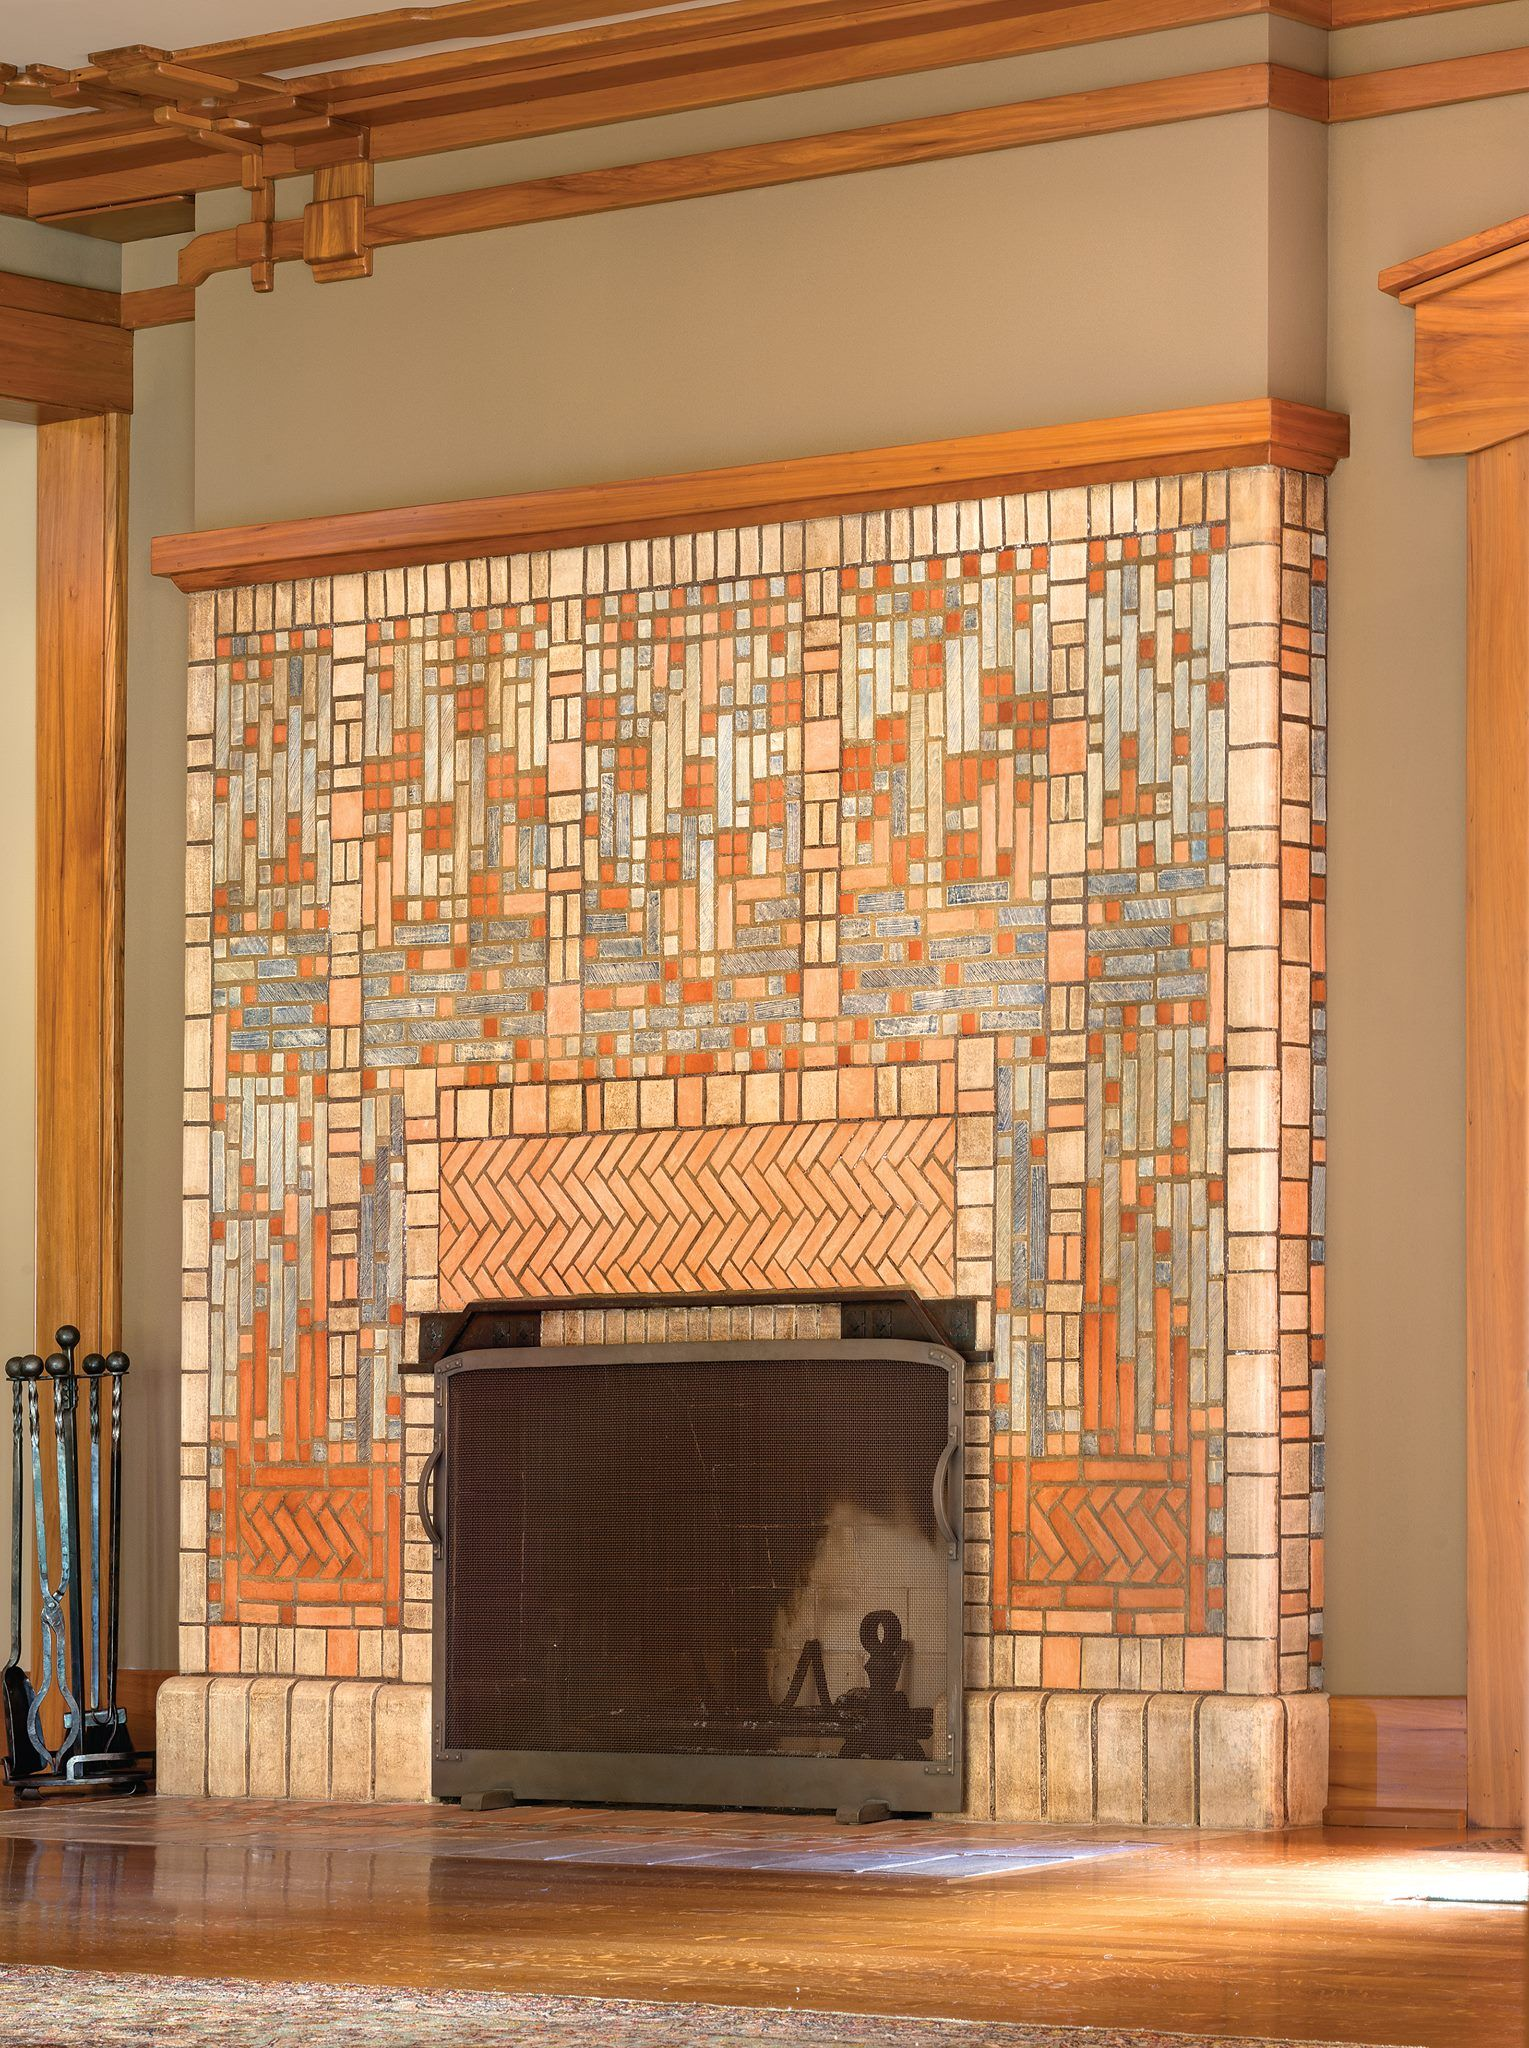 Bungalow Fireplace Mantel Batchelder Tile Fireplace In The 1913 14 James Allen